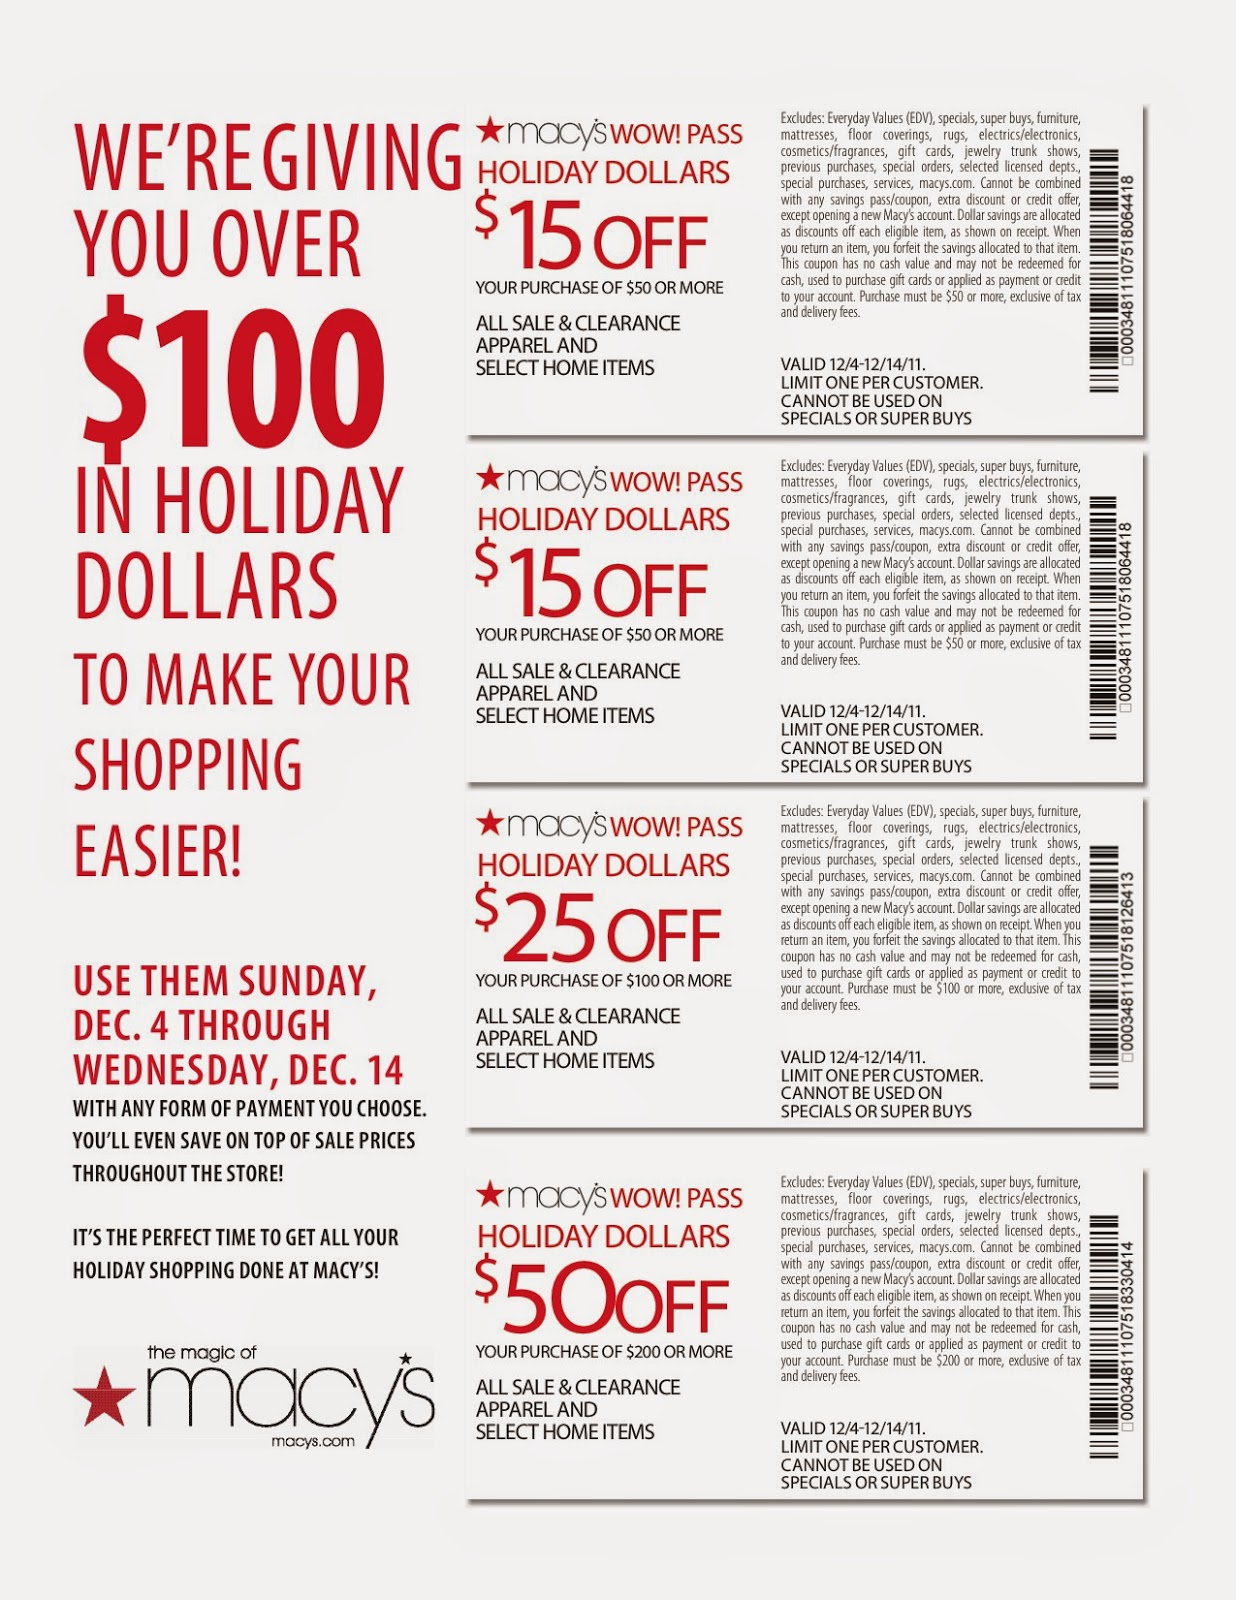 Macy's-10-Off Coupon-Code - Free Printable Coupons 2017